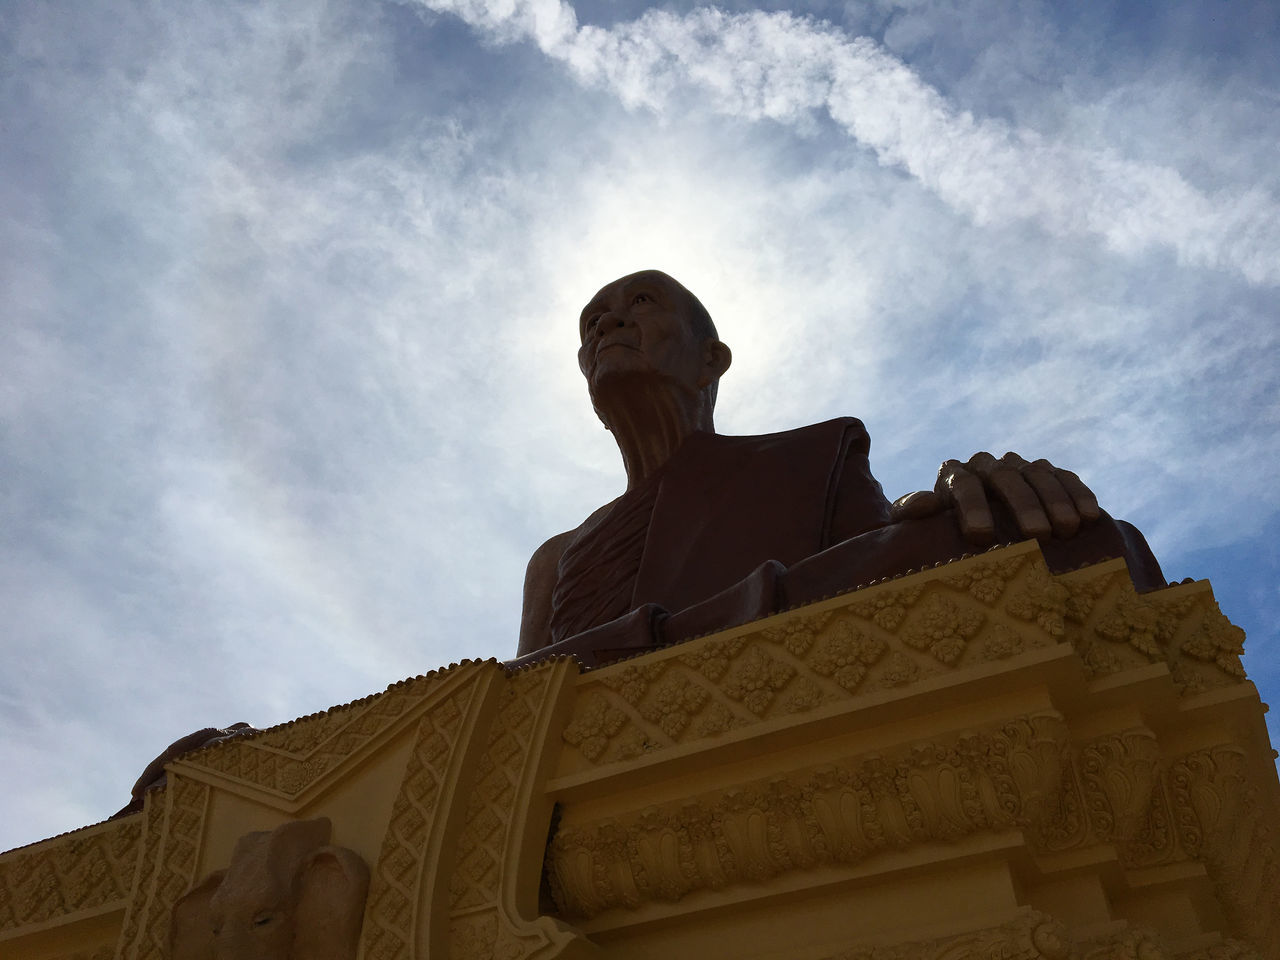 Architecture Budhism Cloud - Sky Day Low Angle View No People Outdoors Relegion Religion Sculpture Sky Statue